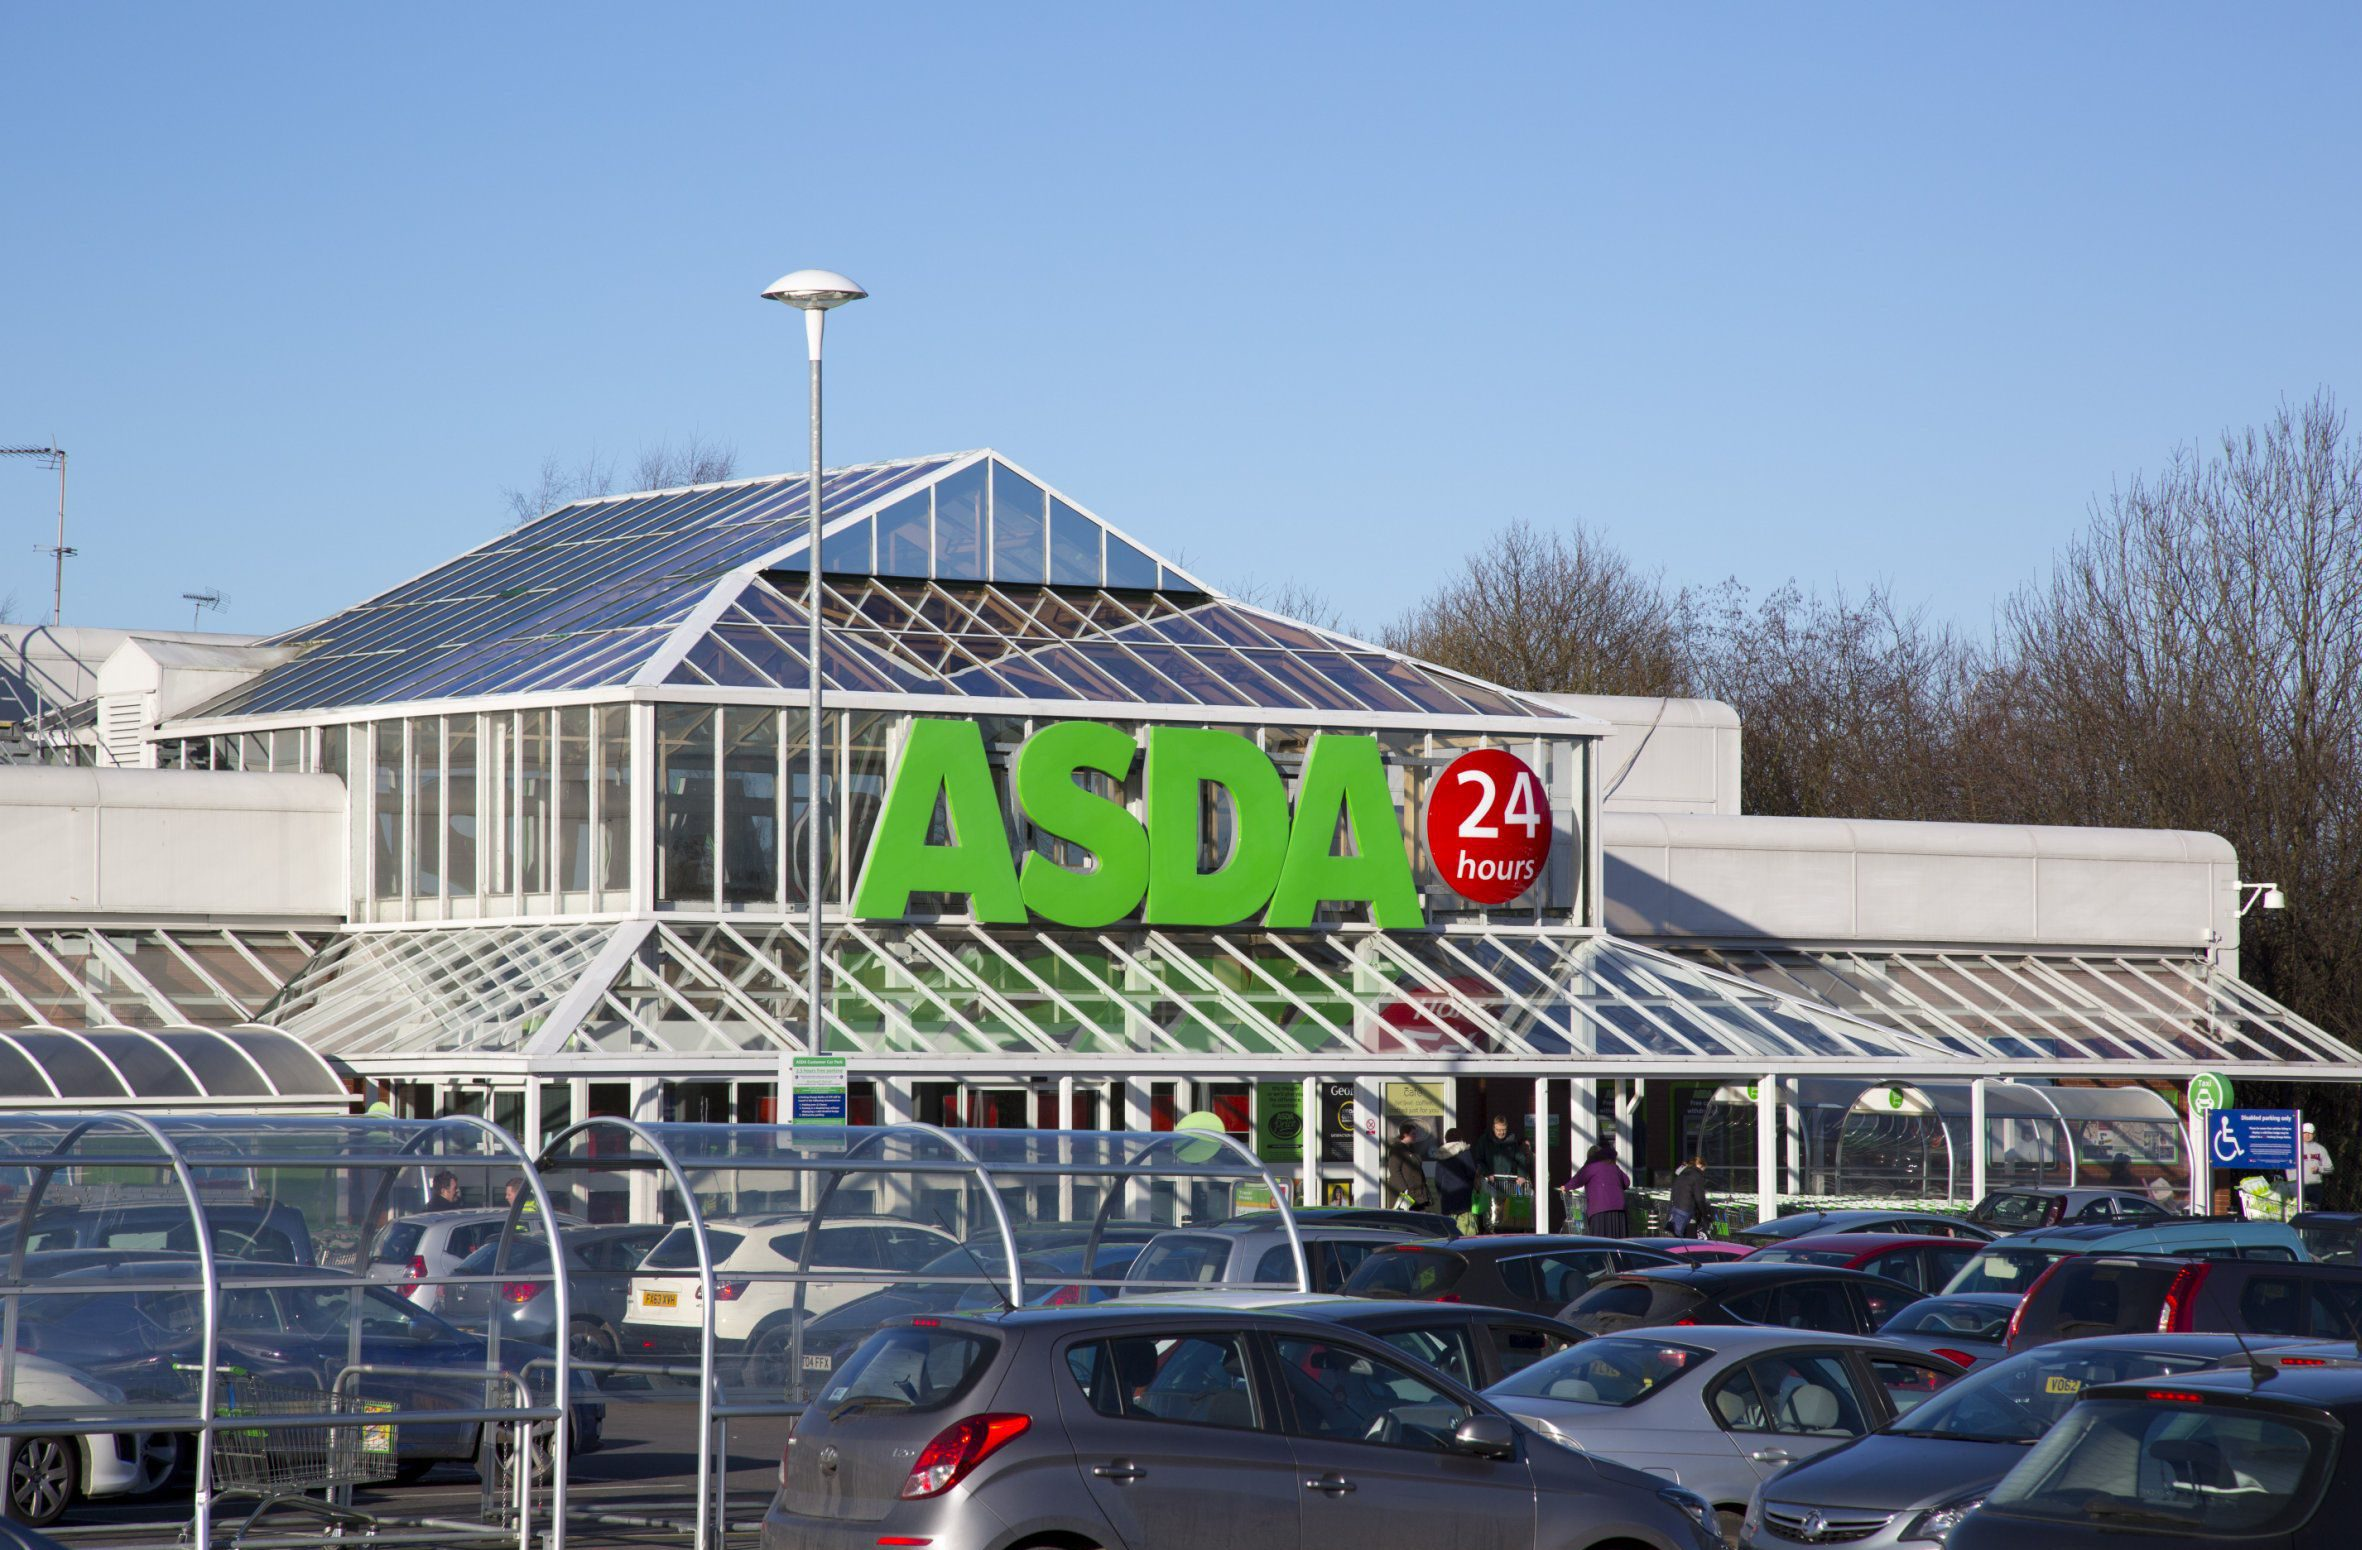 Tesco, Asda, Morrisons and Lidl opening times this weekend January 21-22